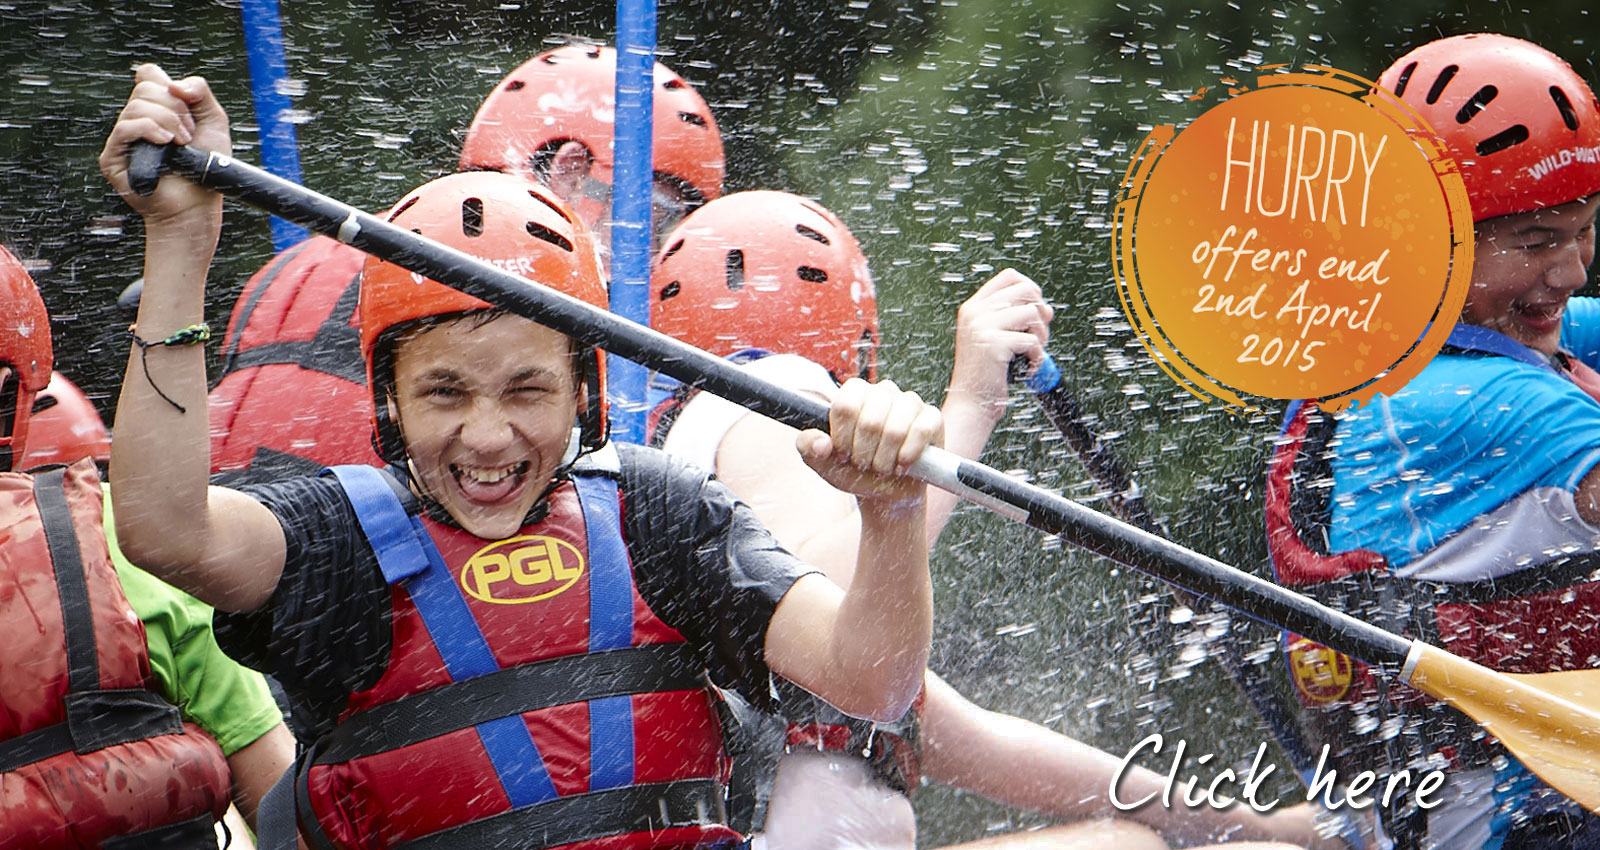 PGL Adventure Holidays - Specialist Holidays and Summer Camps for 7-17 year olds - Special Offers